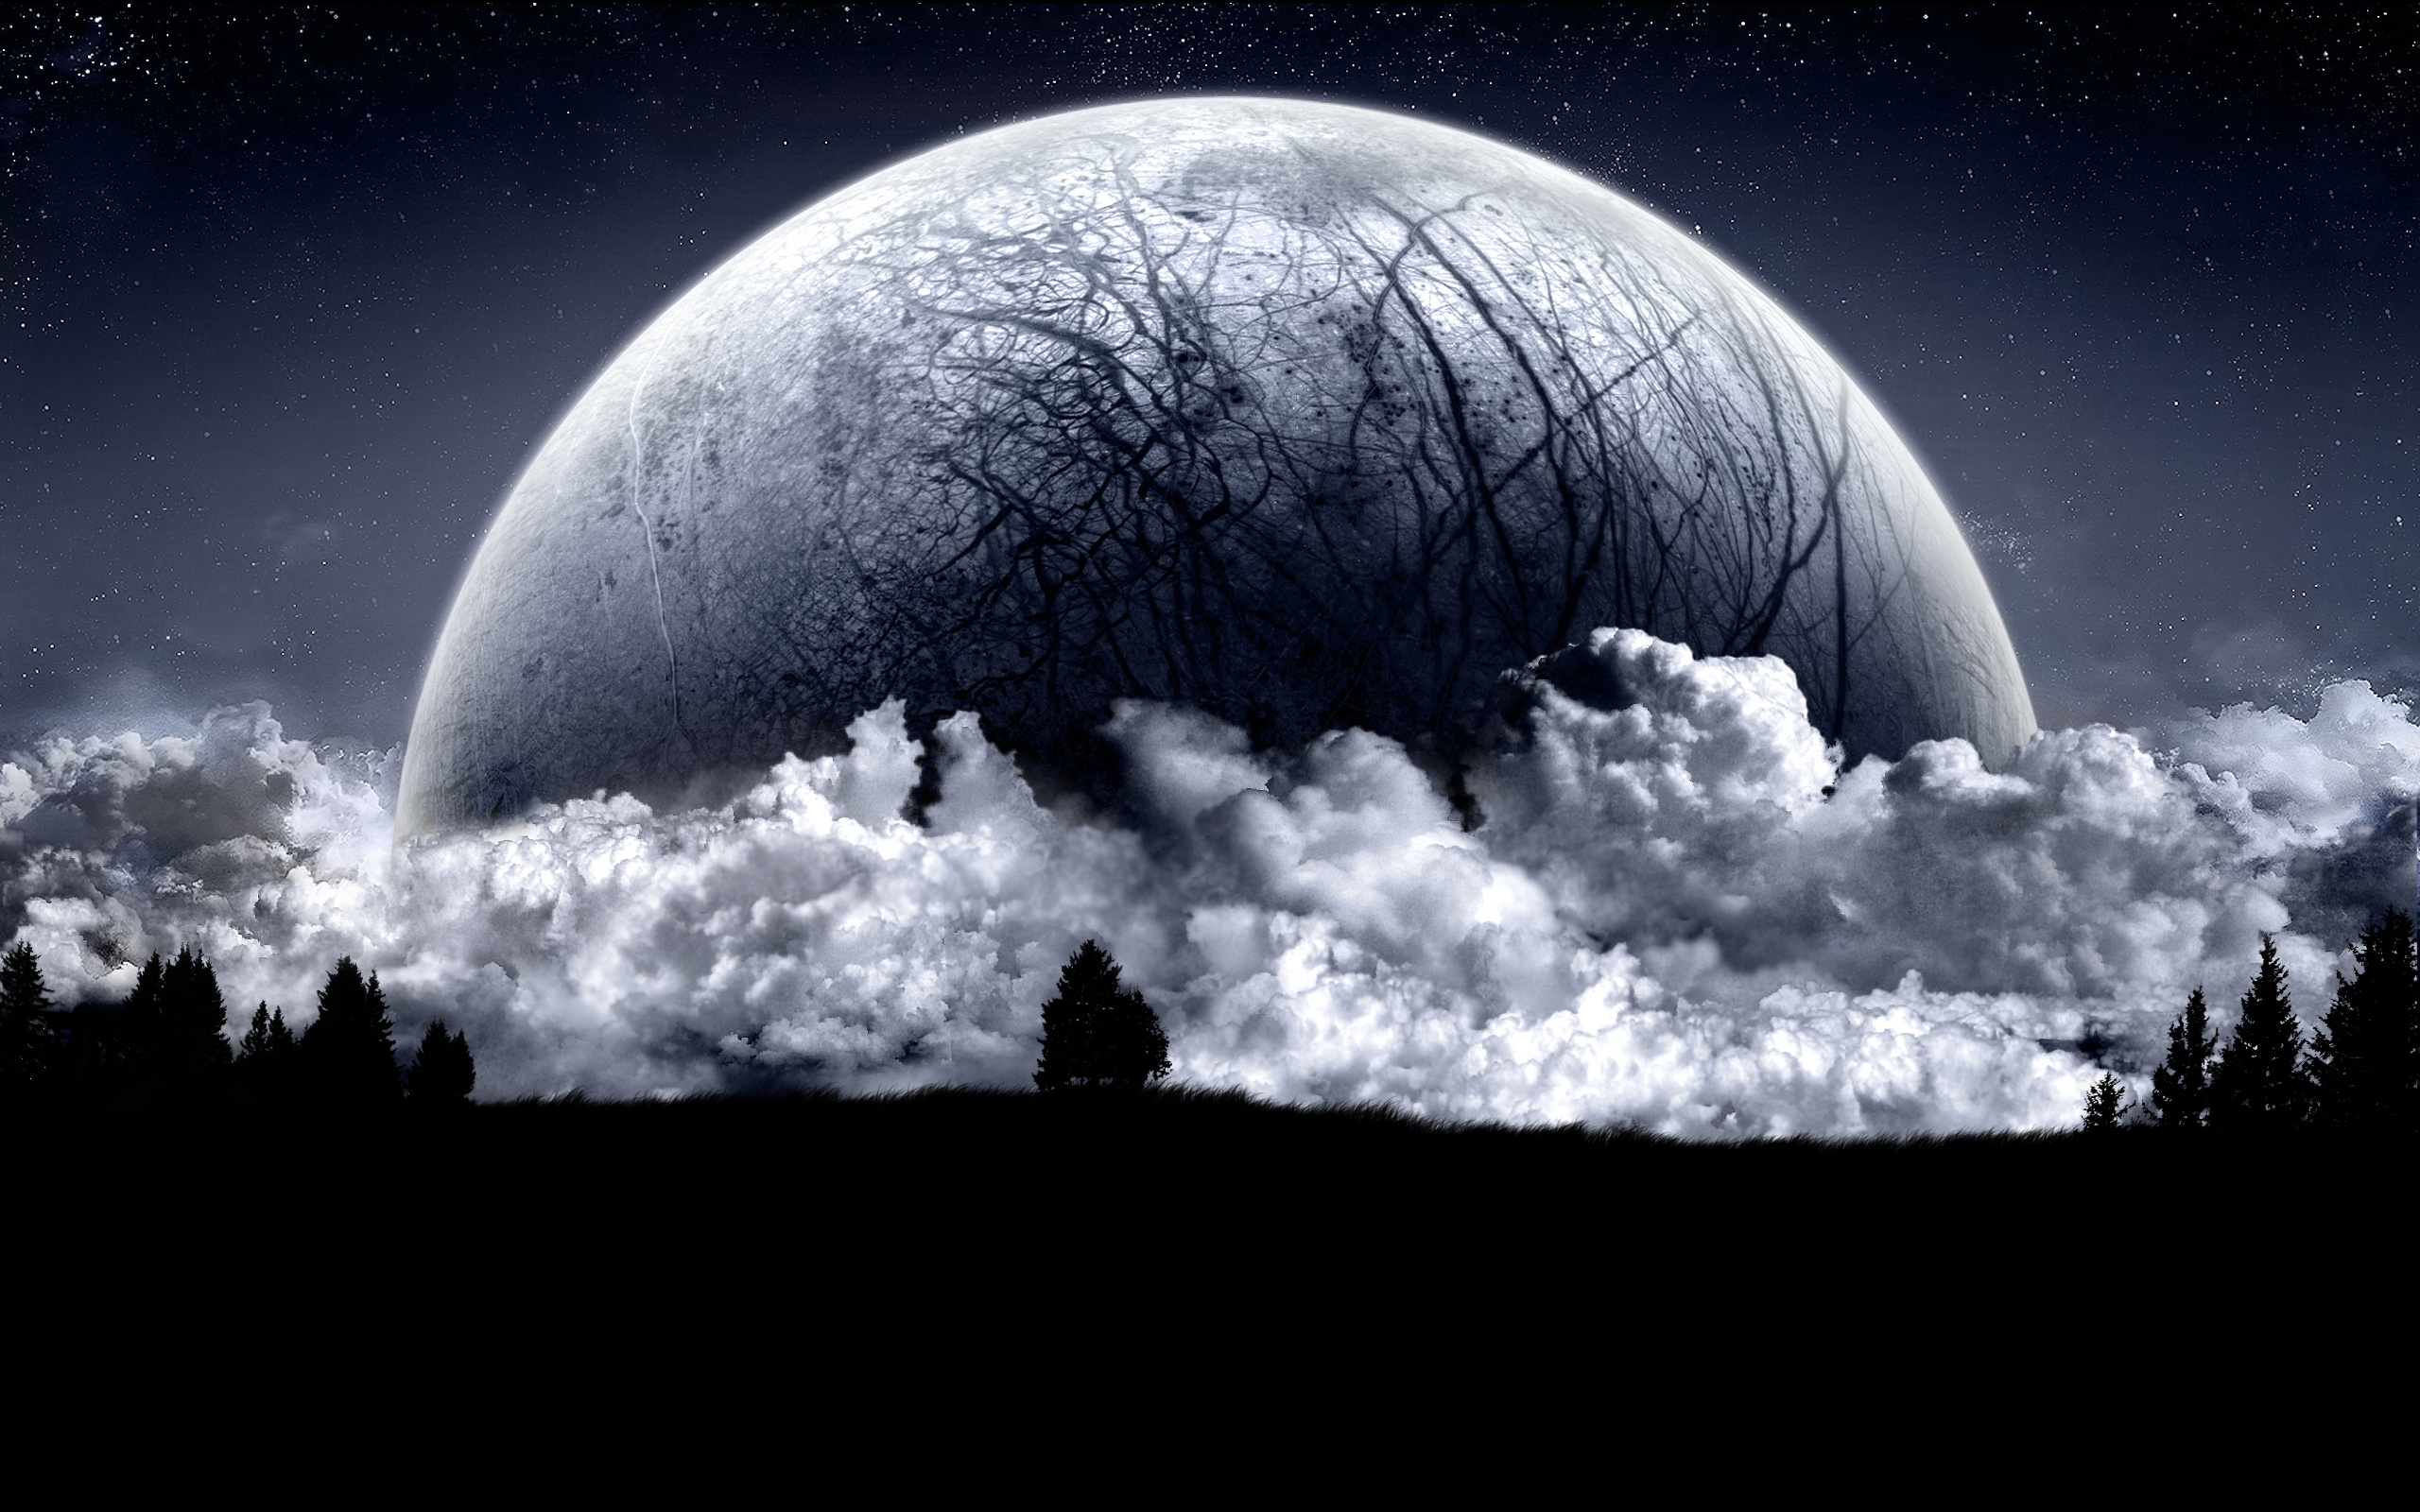 Night moon wallpapers for free download about 208 wallpapers